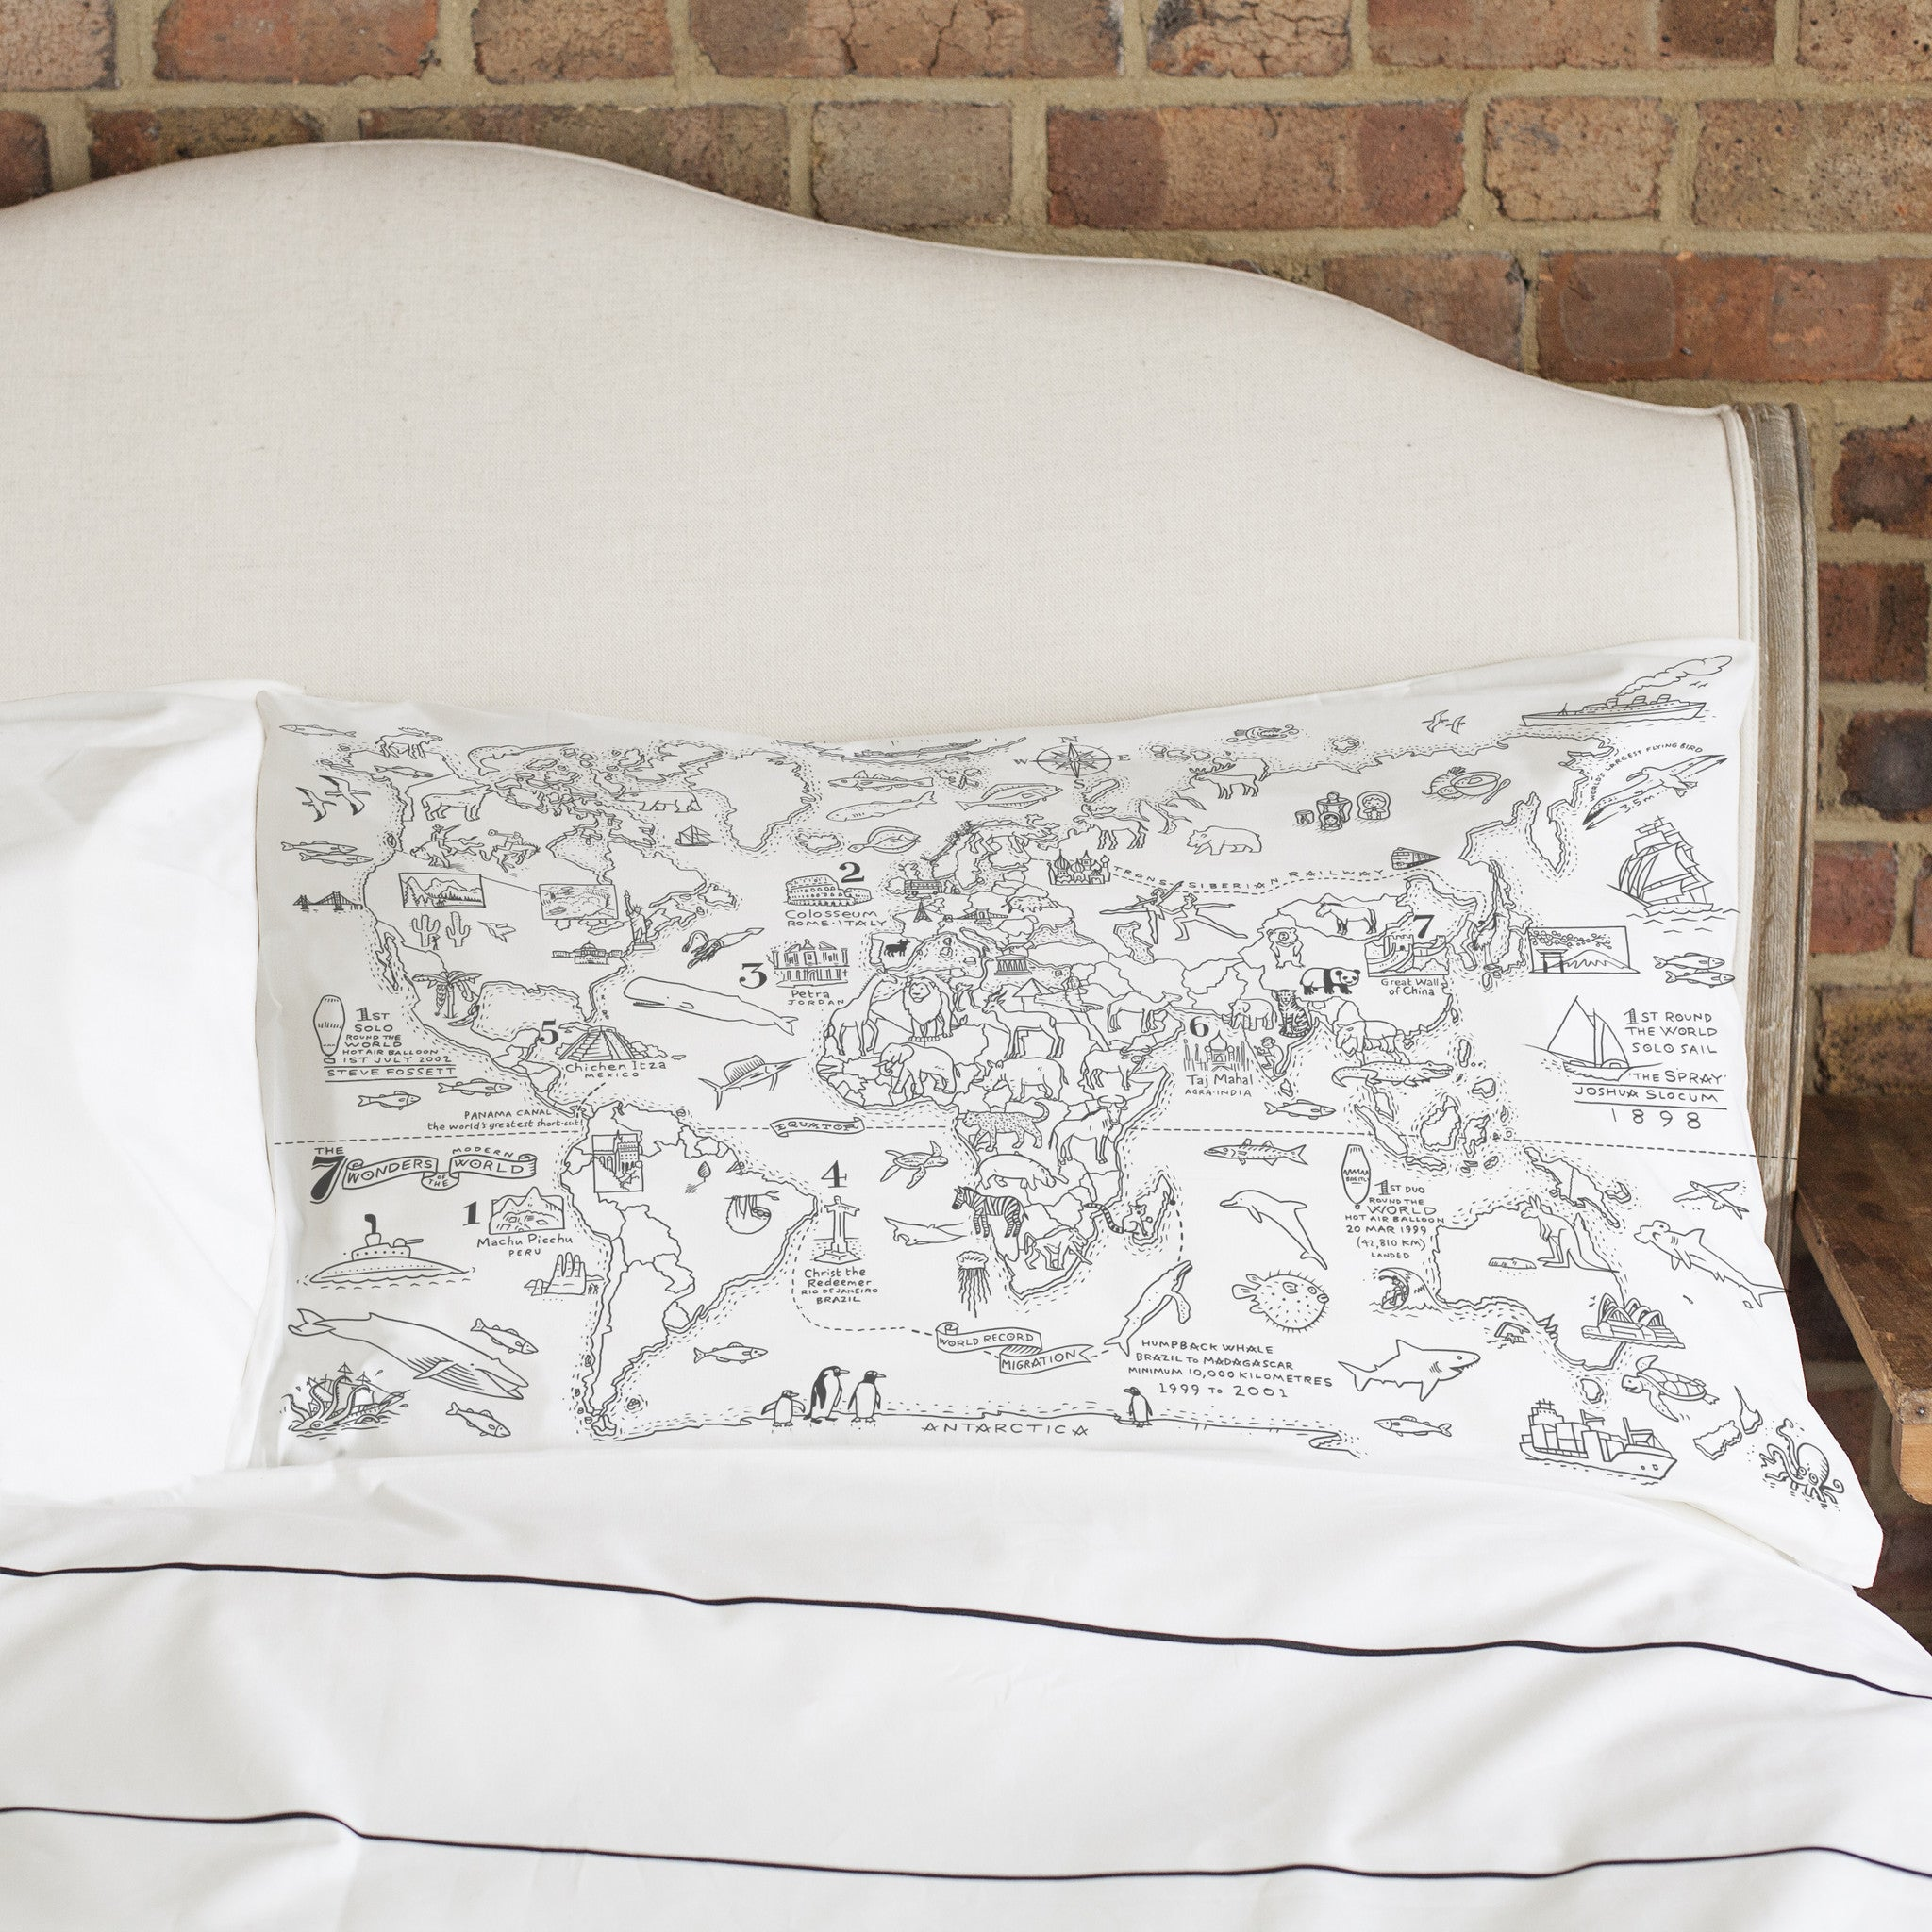 World map color in cotton pillowcase eatsleepdoodle usa color learn world map pillowcase gumiabroncs Images